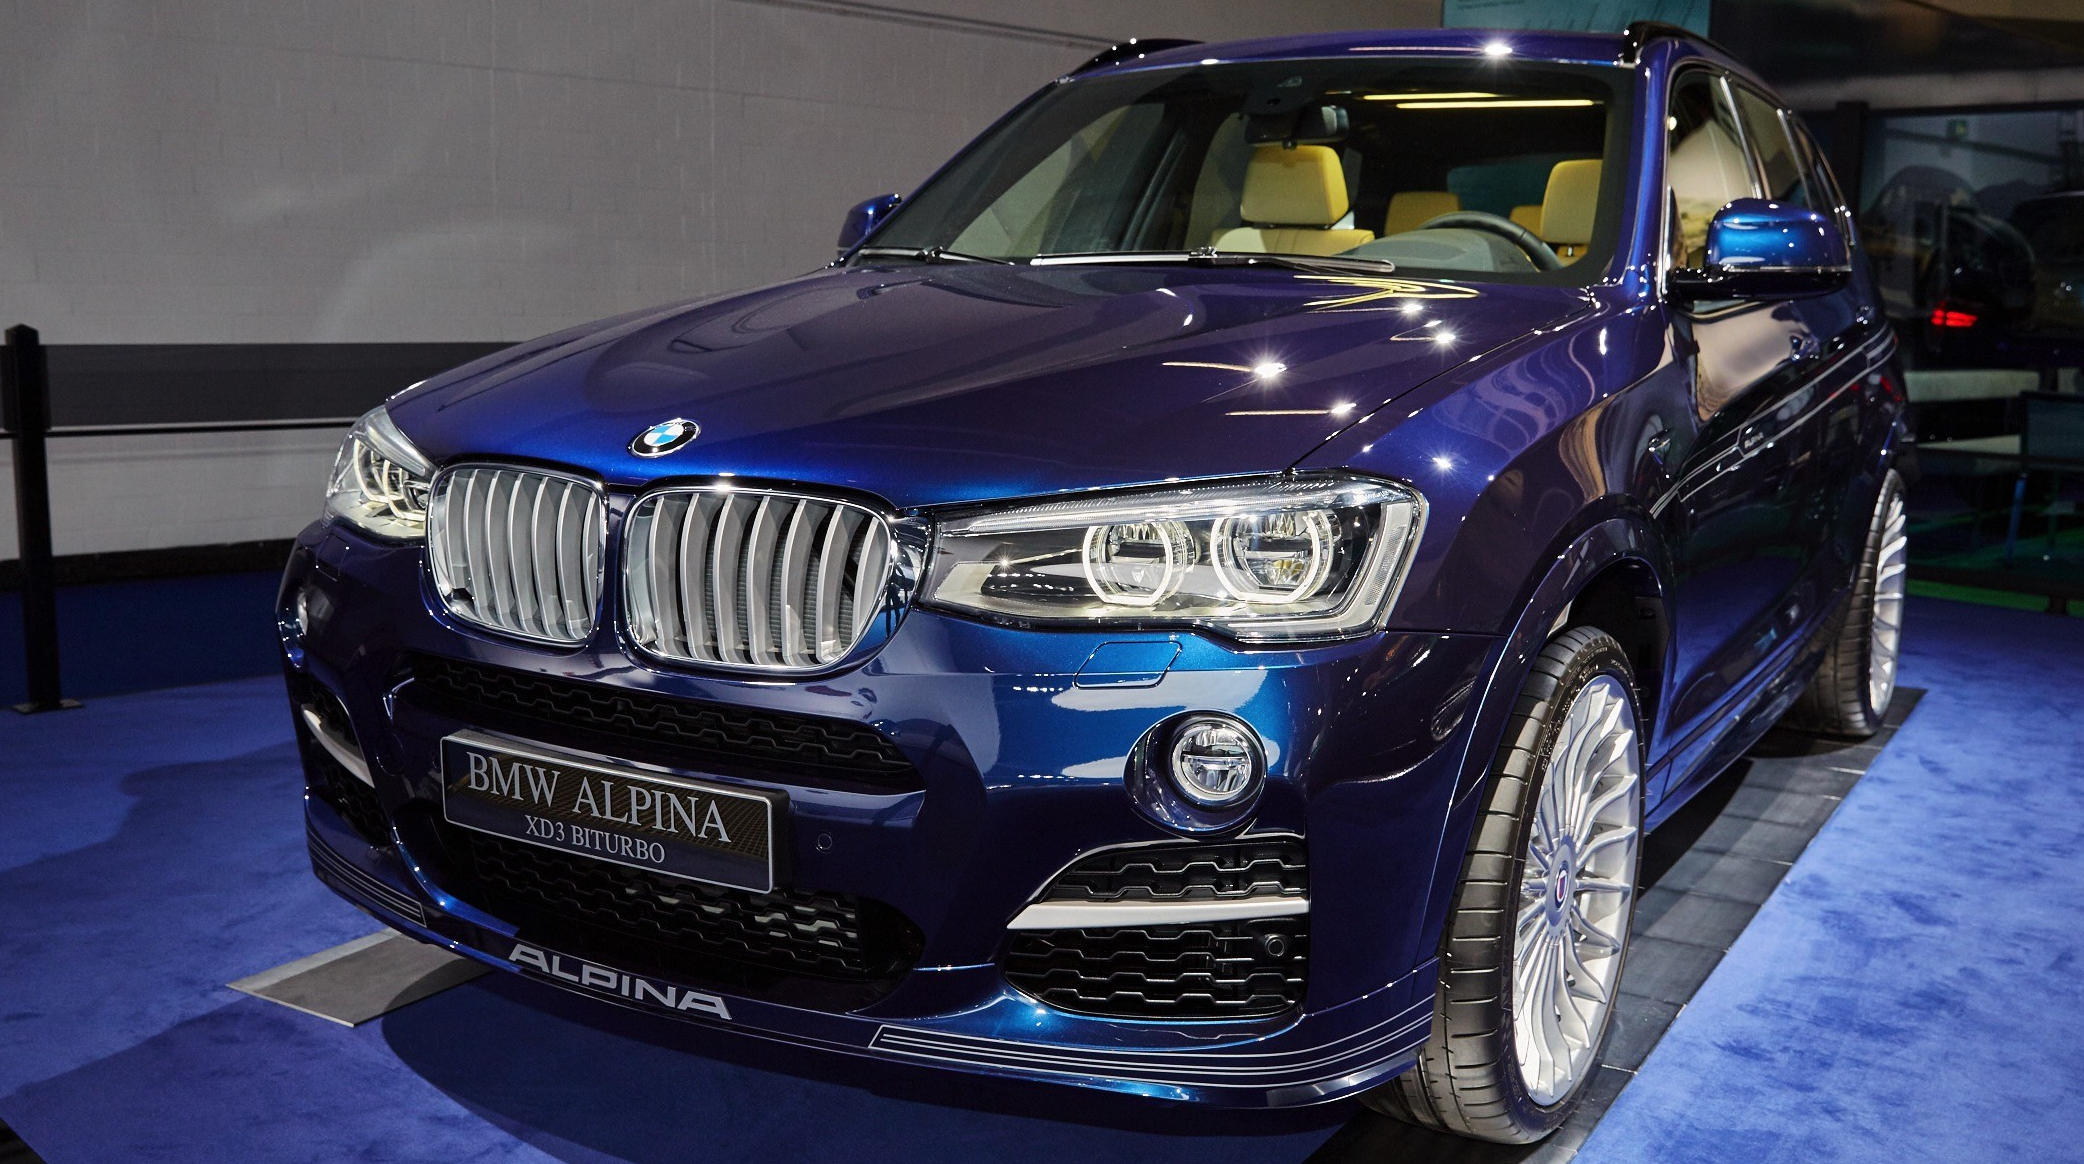 2016 Alpina XD3 Biturbo: Рестайлинг + дизель фото